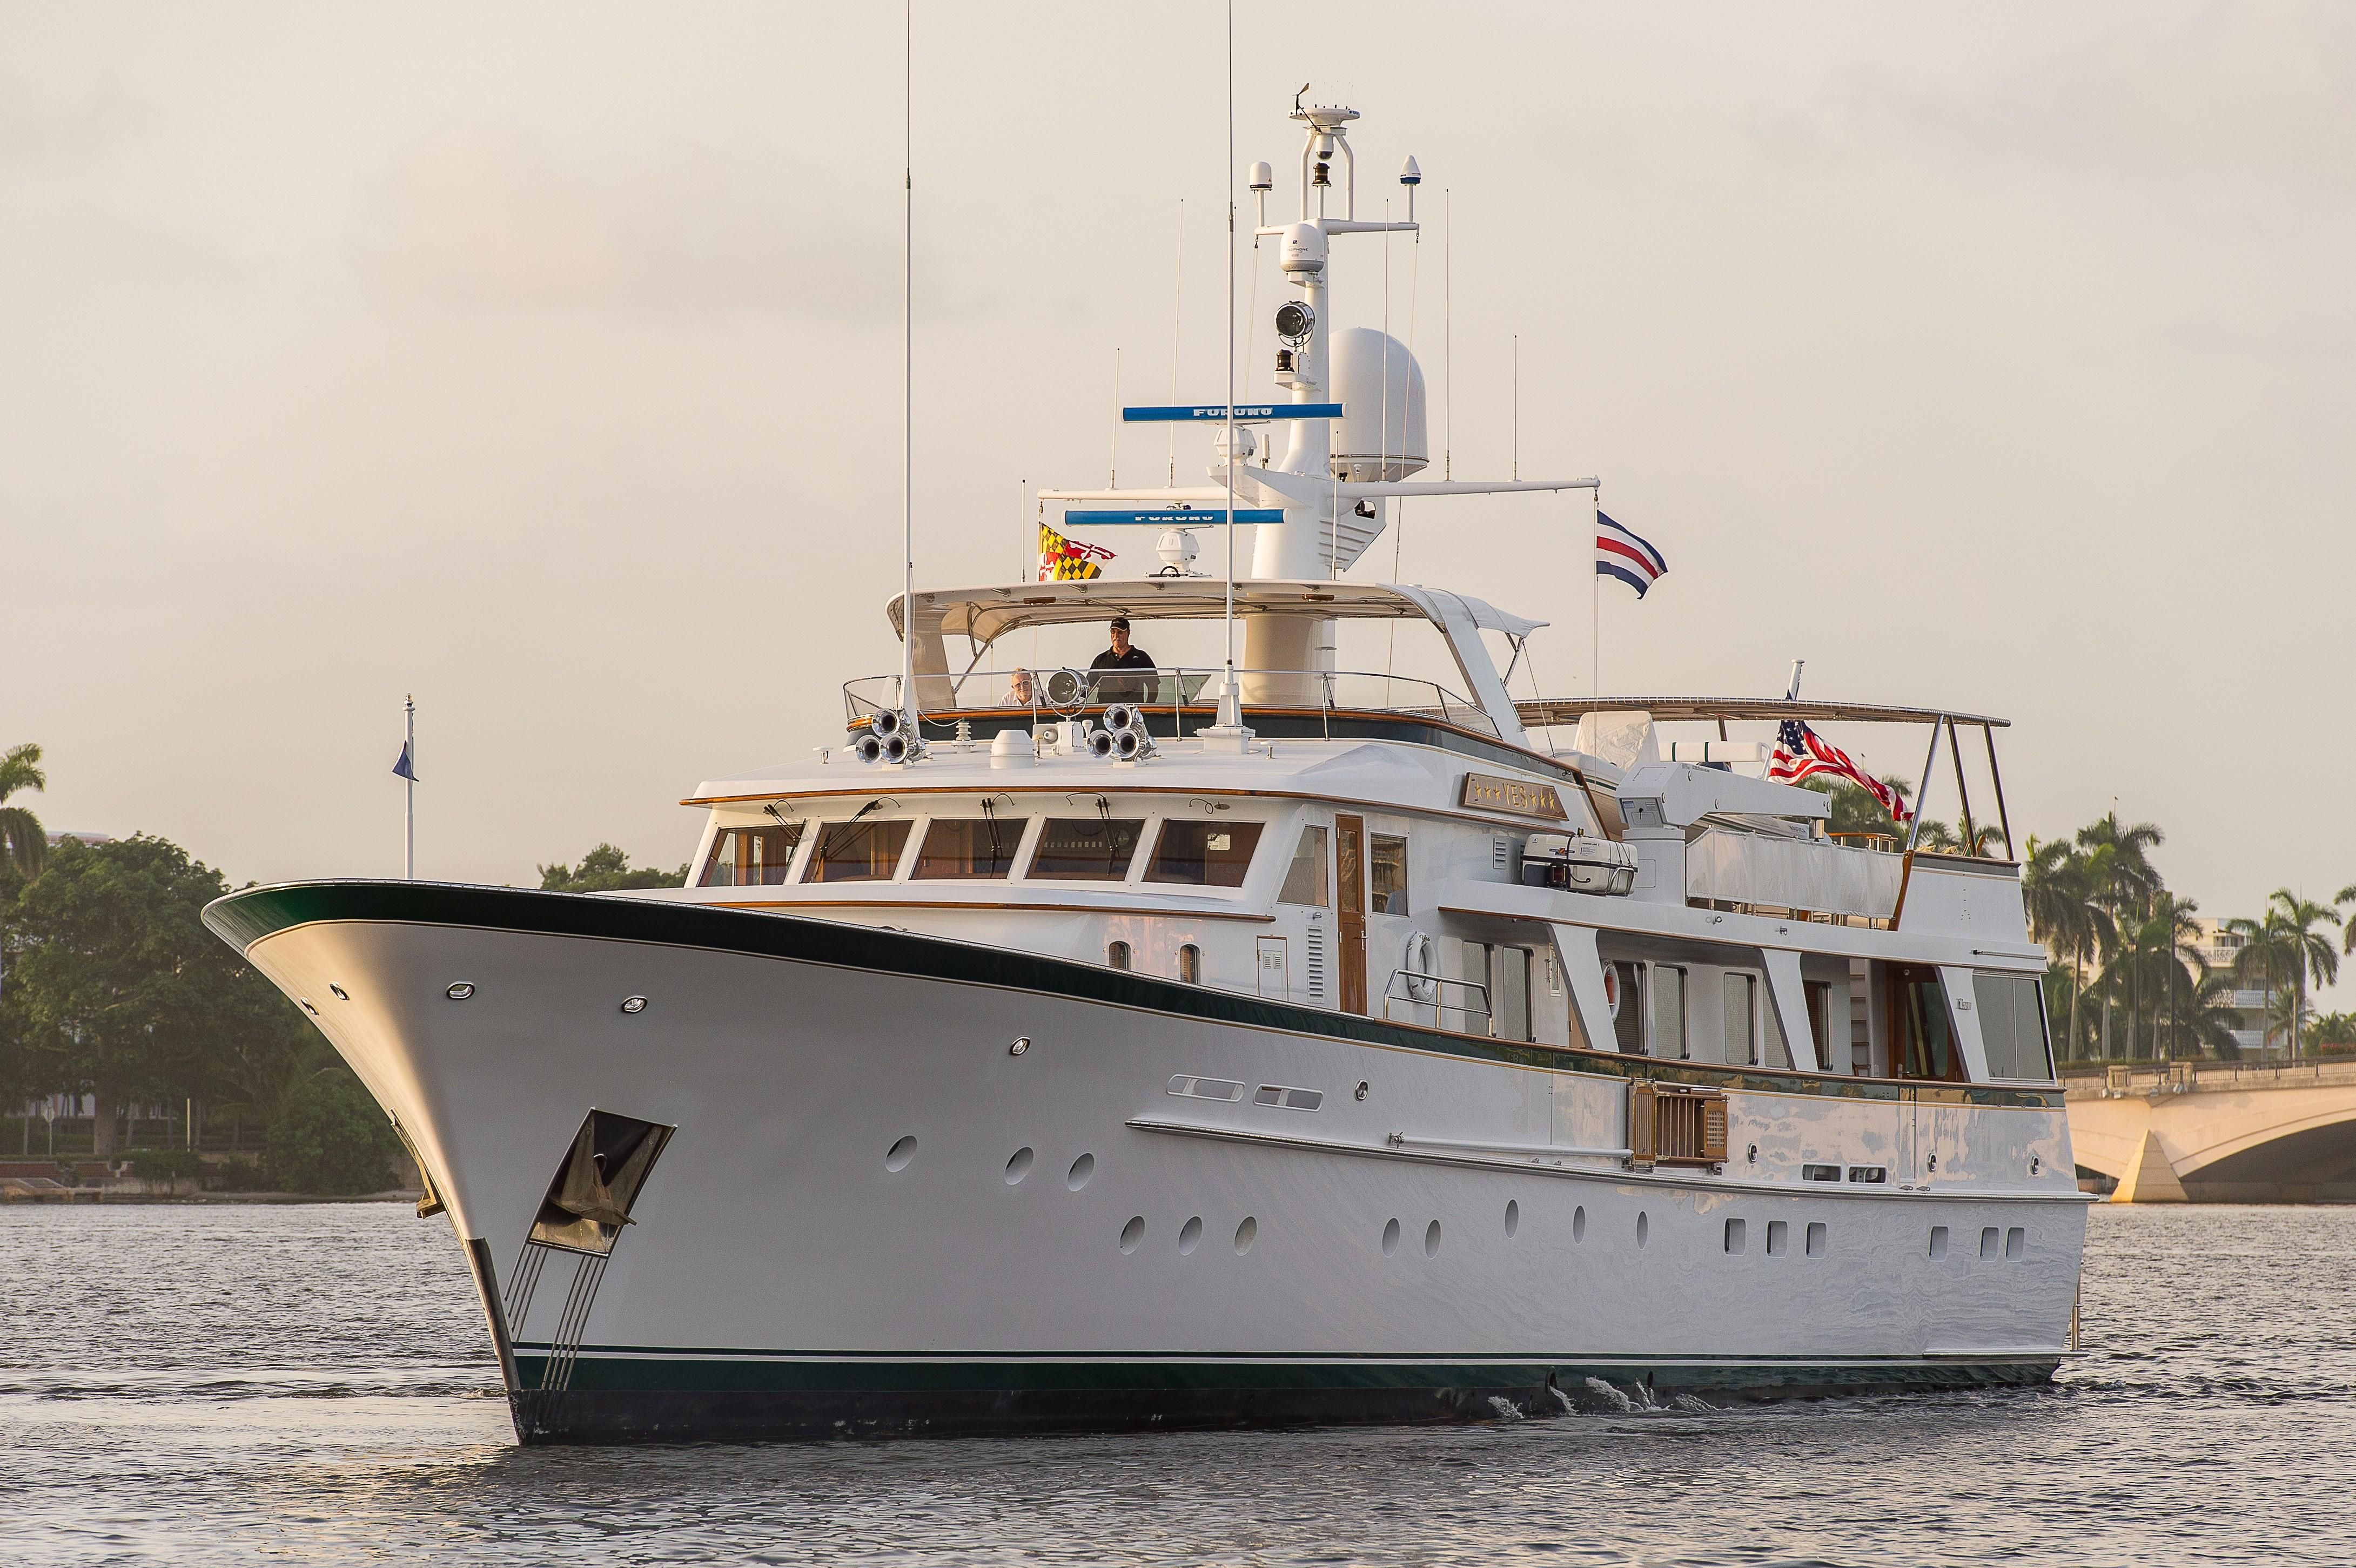 1982 feadship raised pilothouse motor yacht power boat for for Large motor yachts for sale